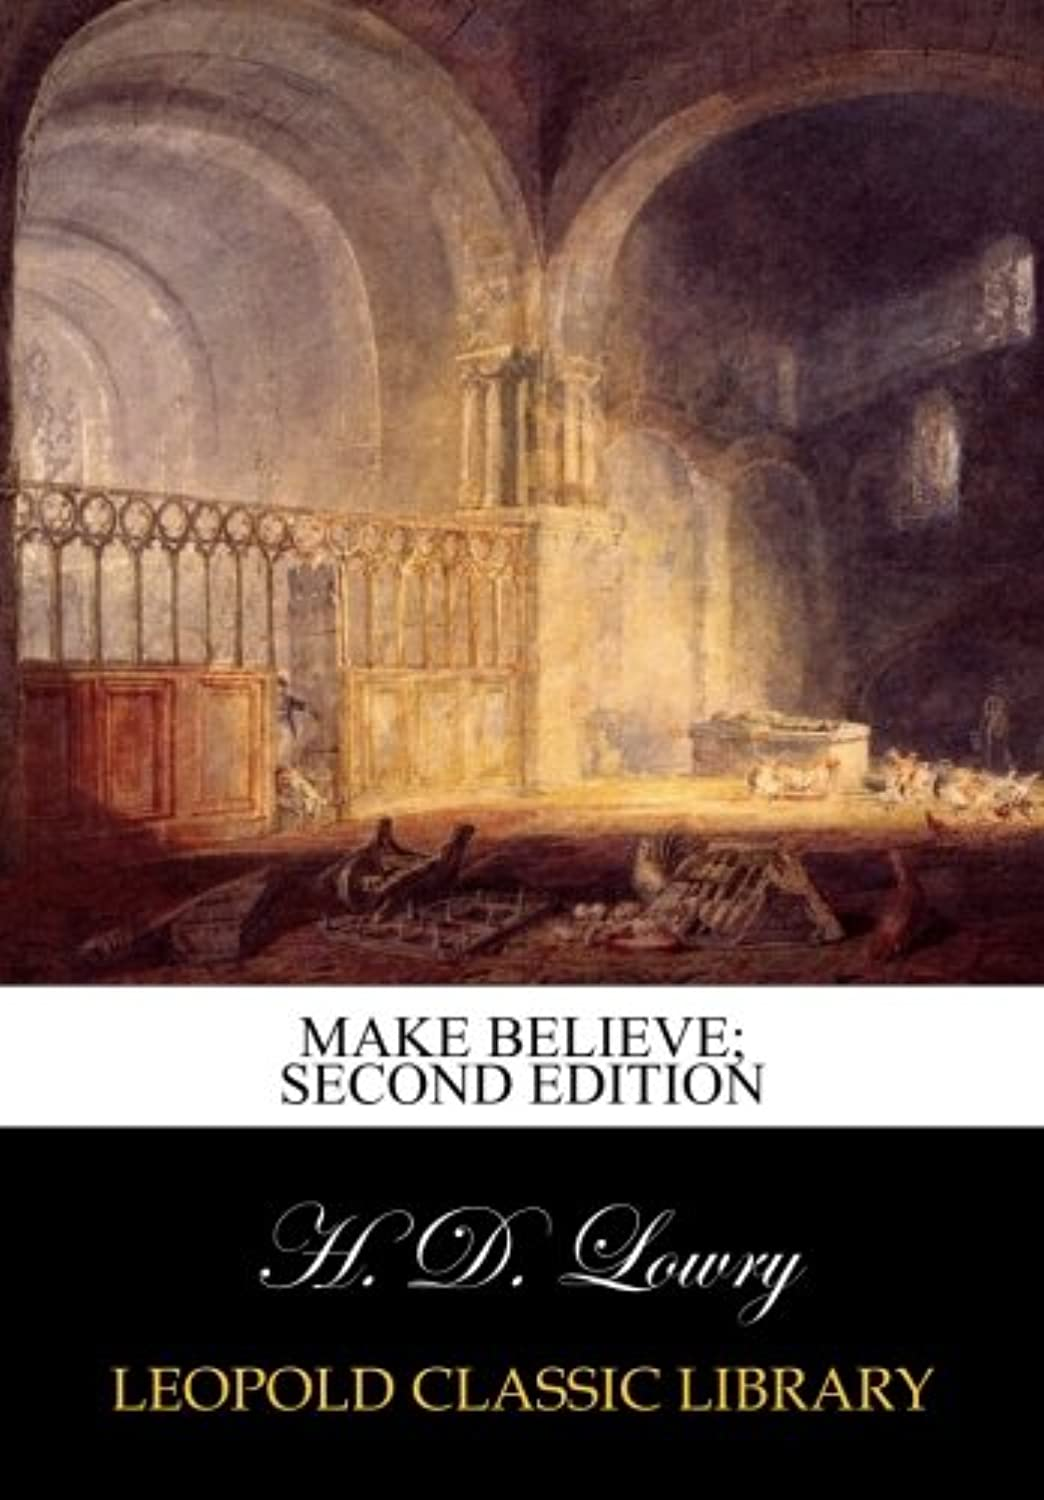 Make believe; second edition